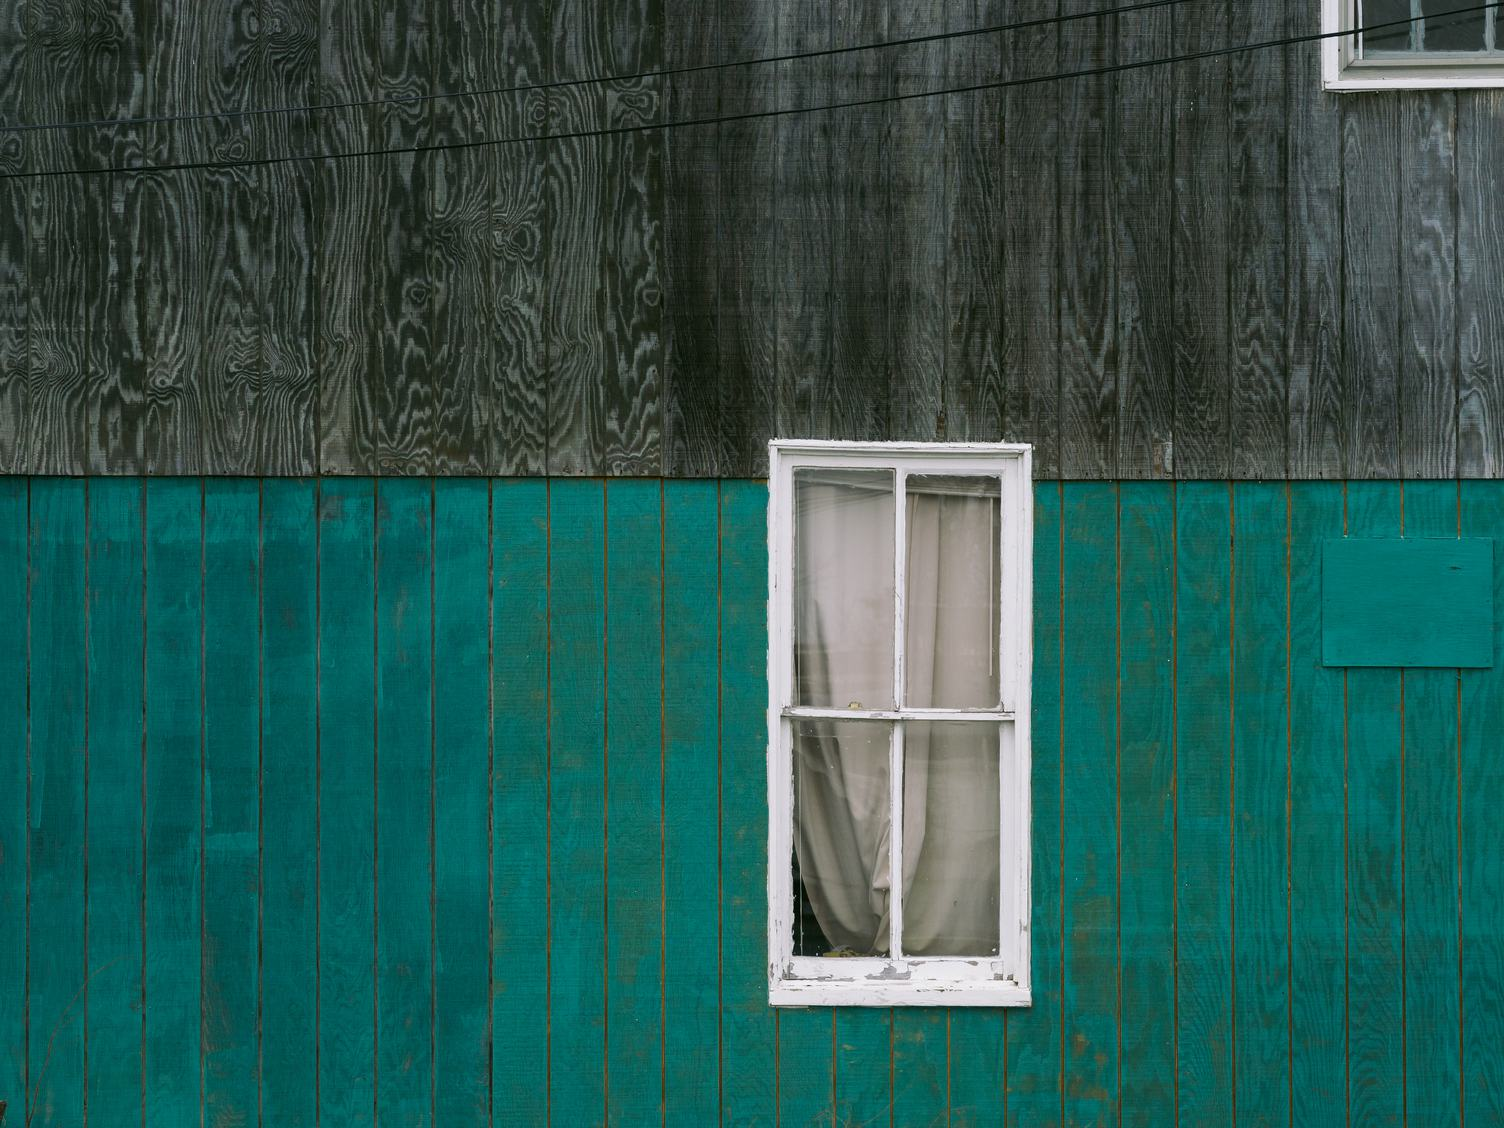 Gray and Turquoise Wooden Wall with Window